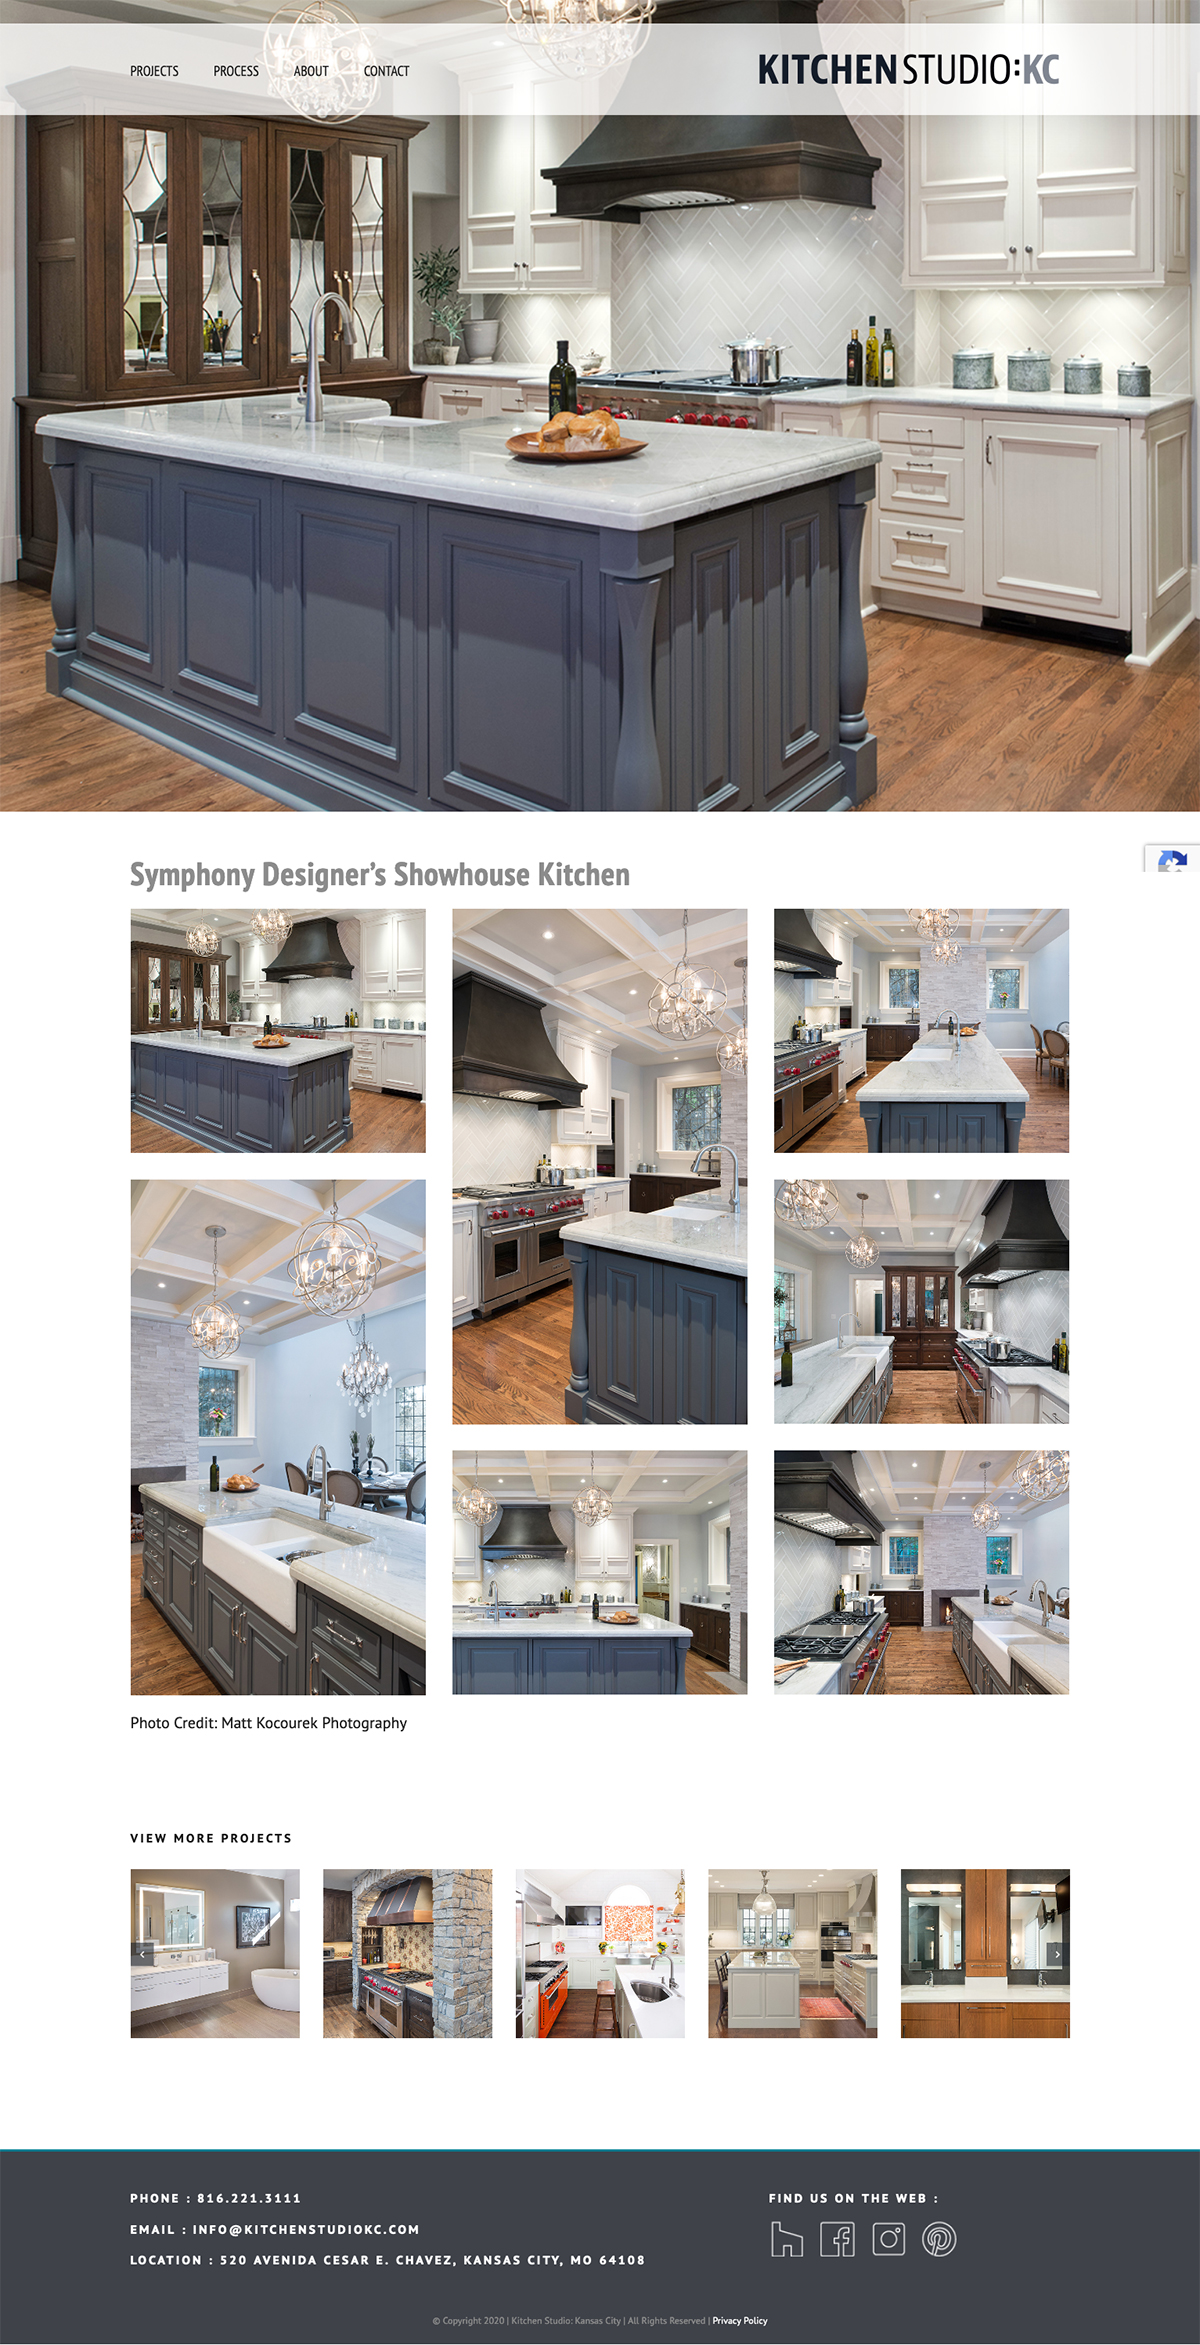 Kitchen Studio:KC business portfolio website